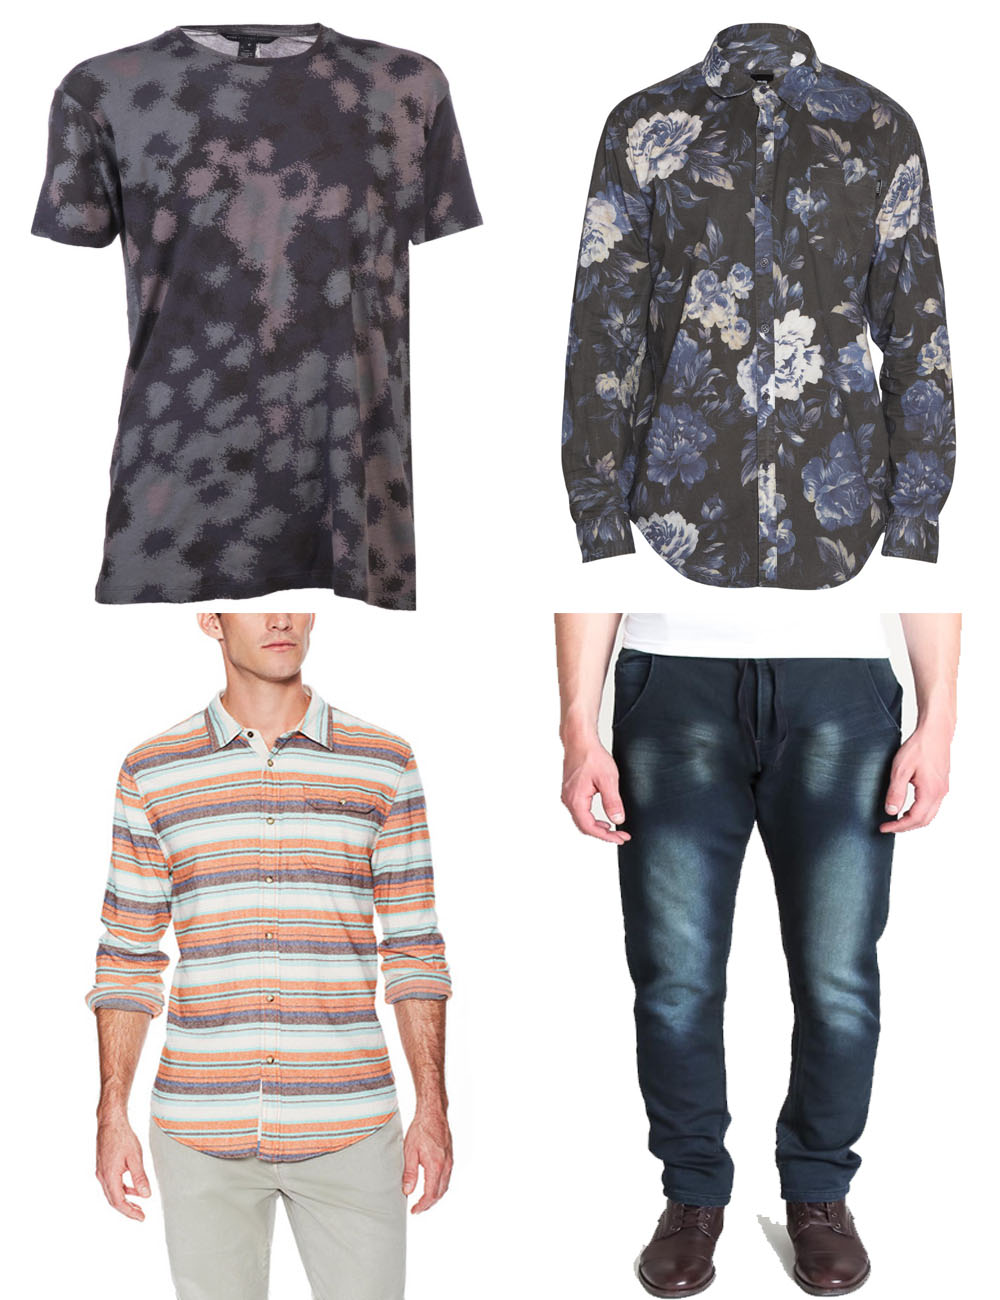 The Kentucky Gent's Black Friday Steals including Marc by Marc Jacobs Camo T-Shirt and JACHS Shirt from Gilt Groupe, and Paul Rizk Jeans and Insight Floral Shirt from Jack Threads